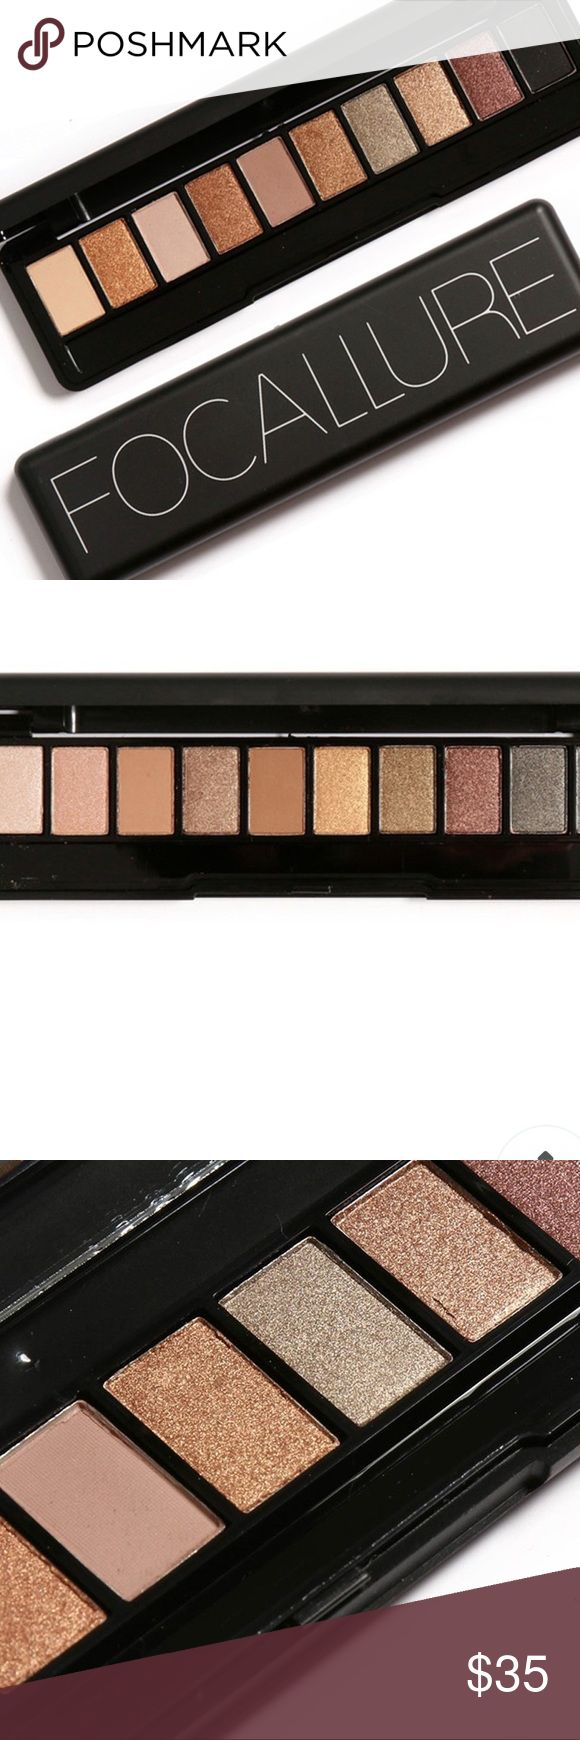 10 Color Matte Shimmer Eyeshadow Palette BNWT 10 color matte shimmer eyeshadow palette set with mirror and eyeshadow sponge. Beautiful colors to make you fabulous day or night, work or play. Free gift with purchase🎁 Makeup Eyeshadow